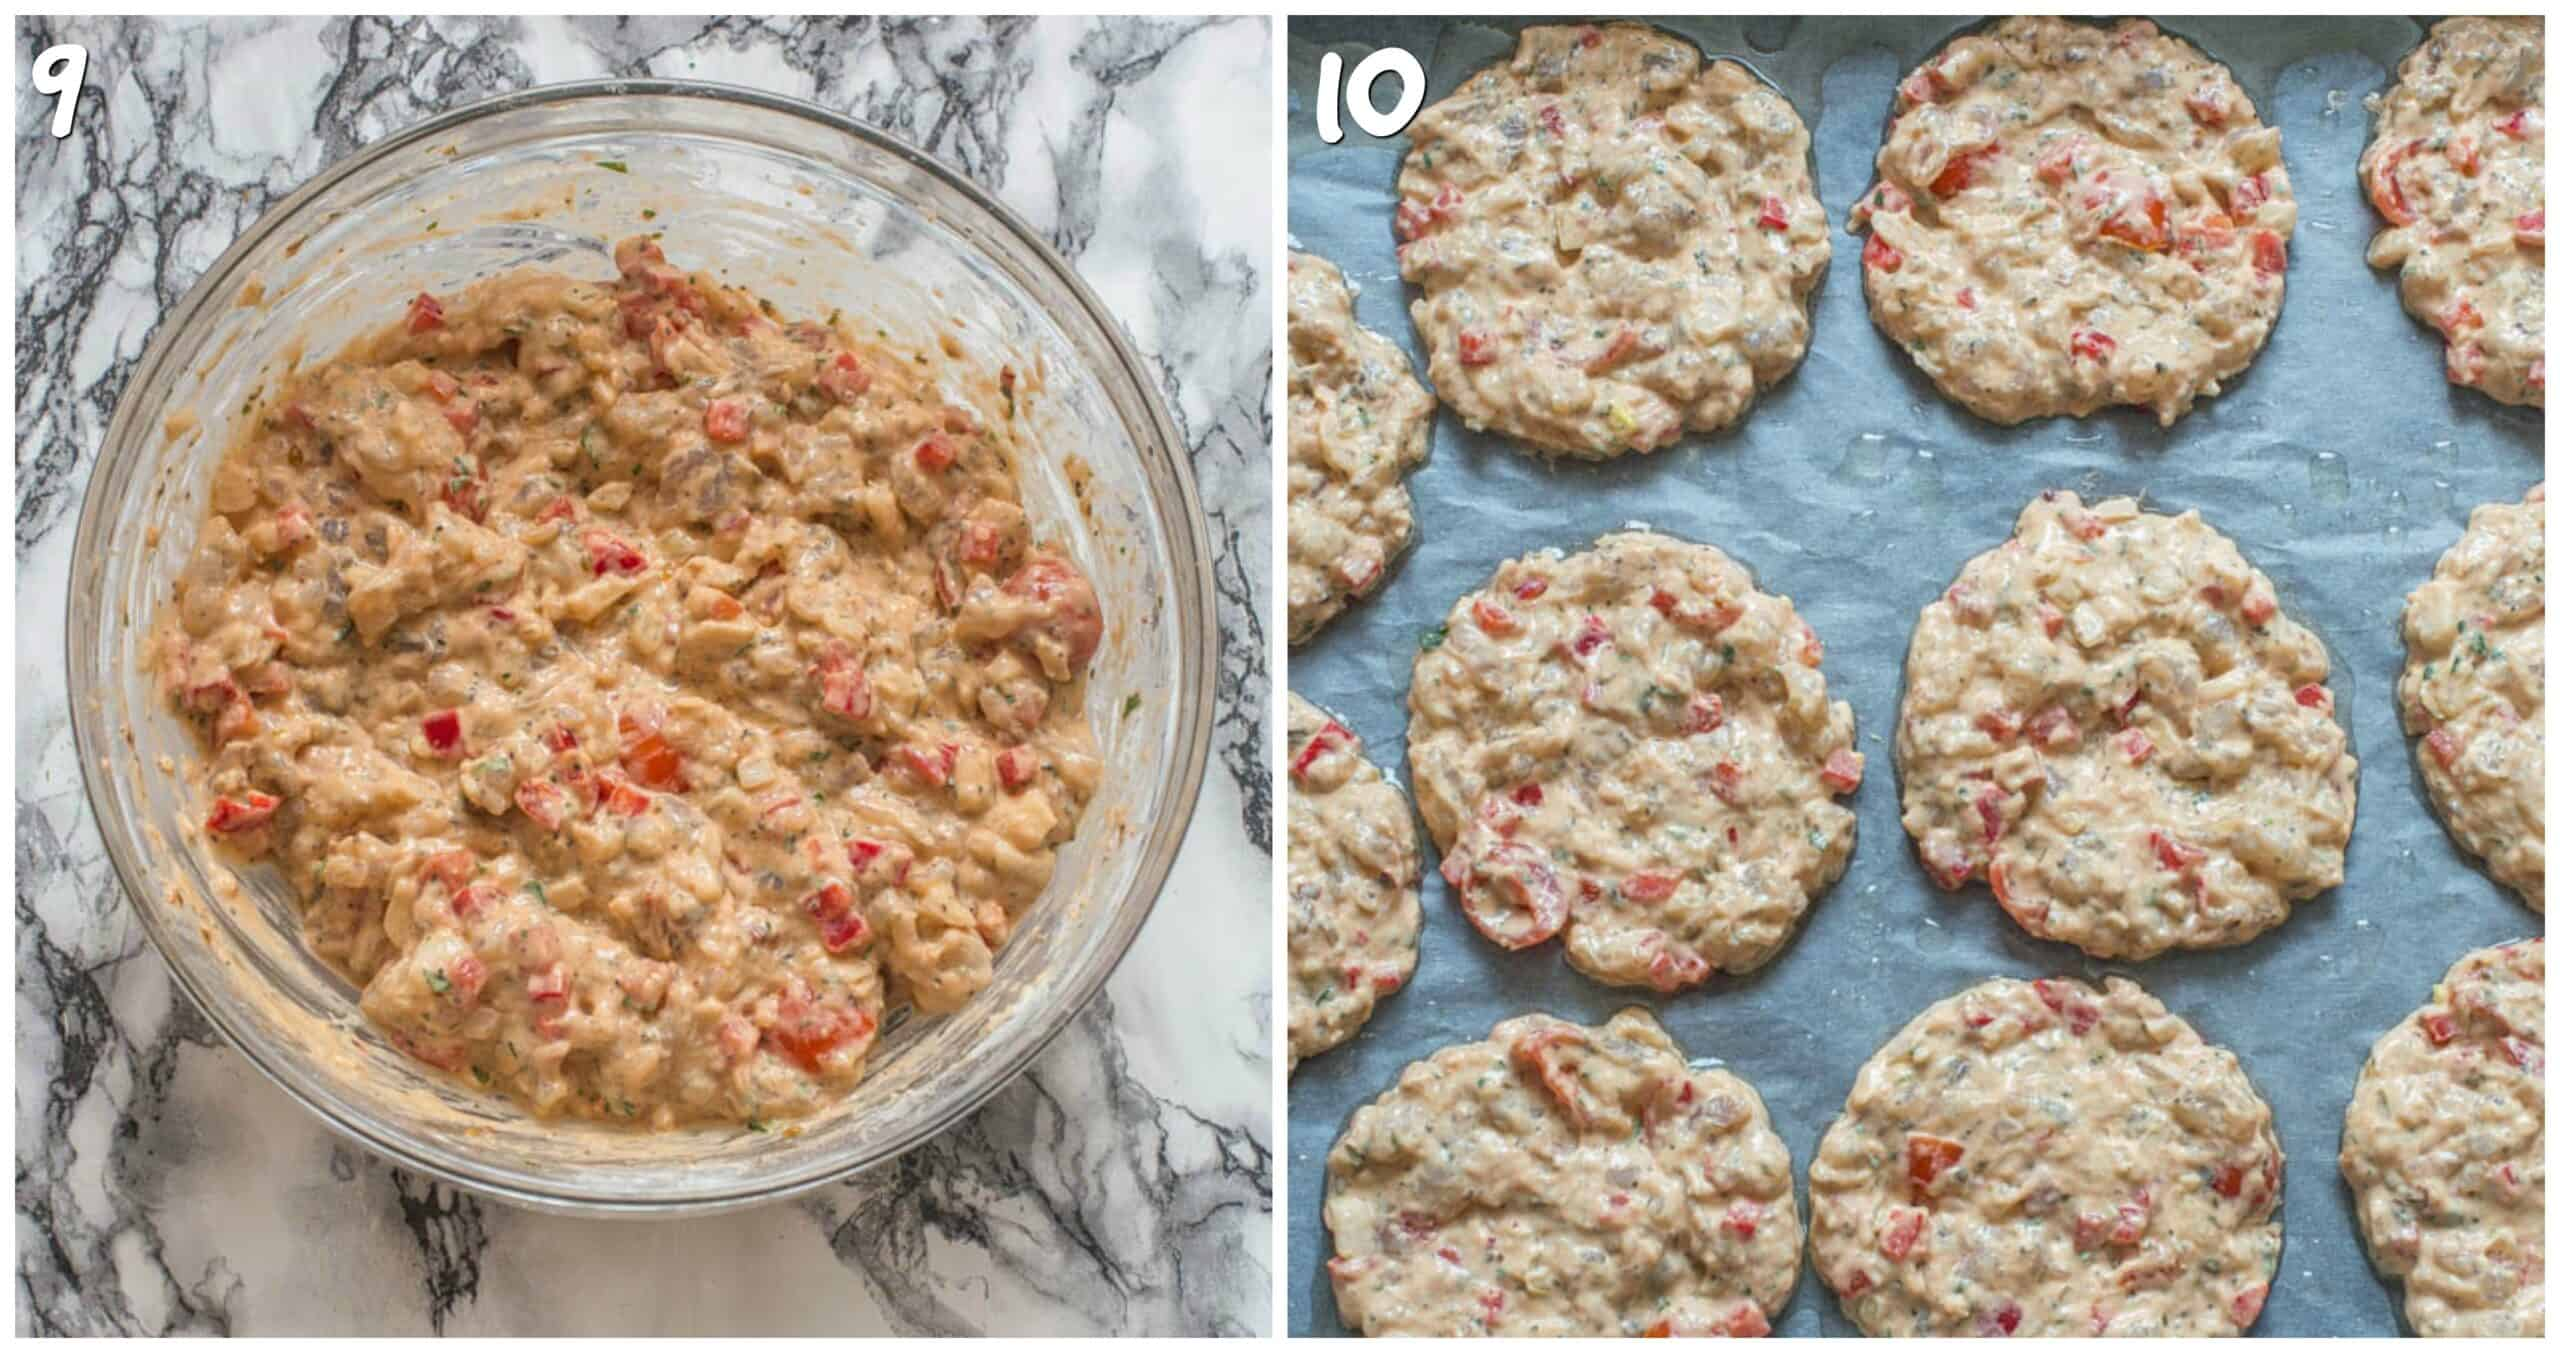 steps 9-10 mixing shrimp batter and to the baking tray